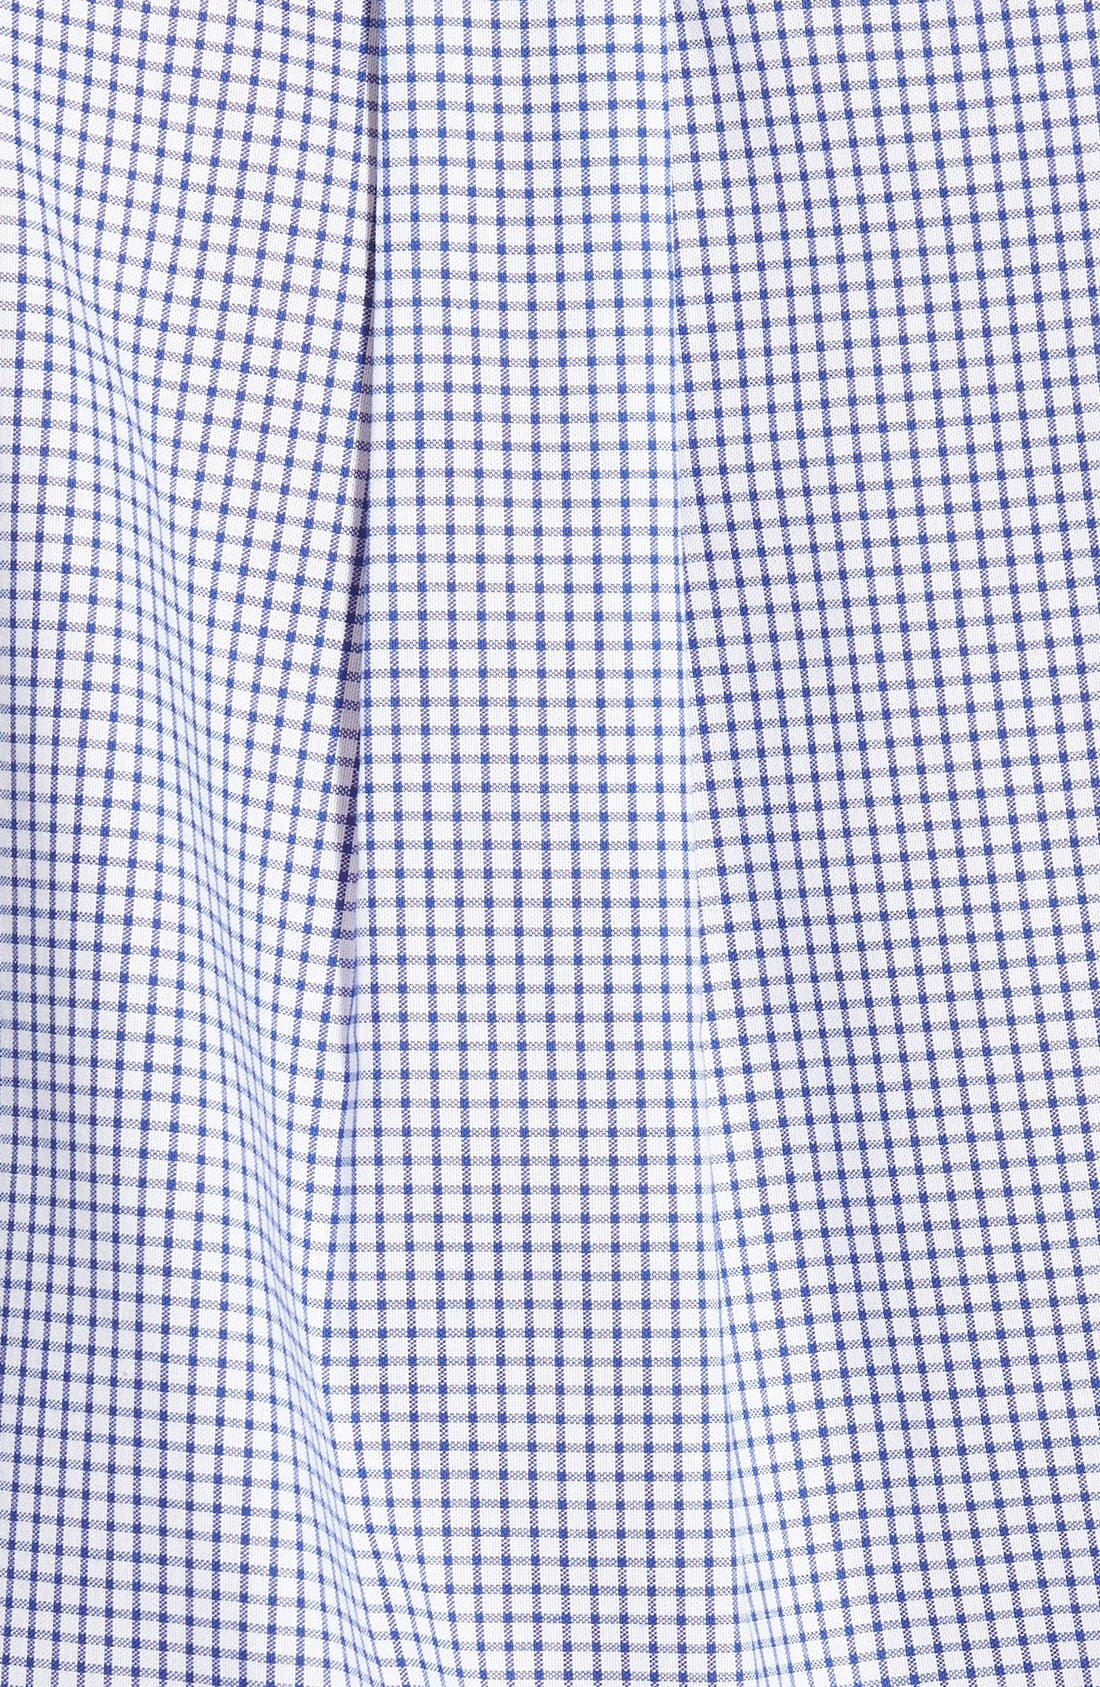 Alternate Image 2  - Cutter & Buck 'Epic Easy Care' Classic Fit Wrinkle Free Tattersall Plaid Sport Shirt (Online Only)